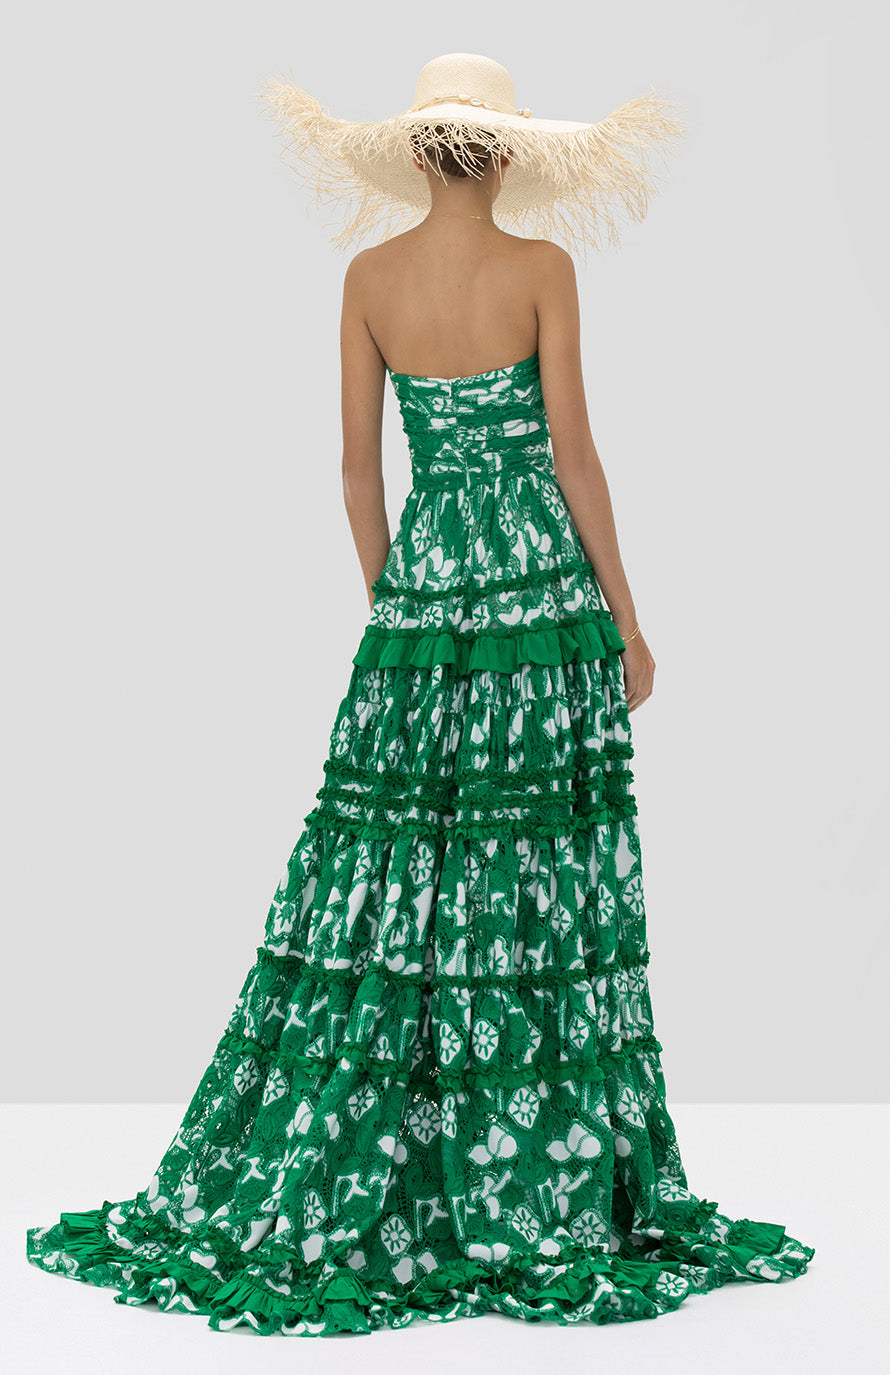 Alexis Samanta Gown in Emerald Embroidered Lace from the Spring Summer 2020 Collection - Rear View